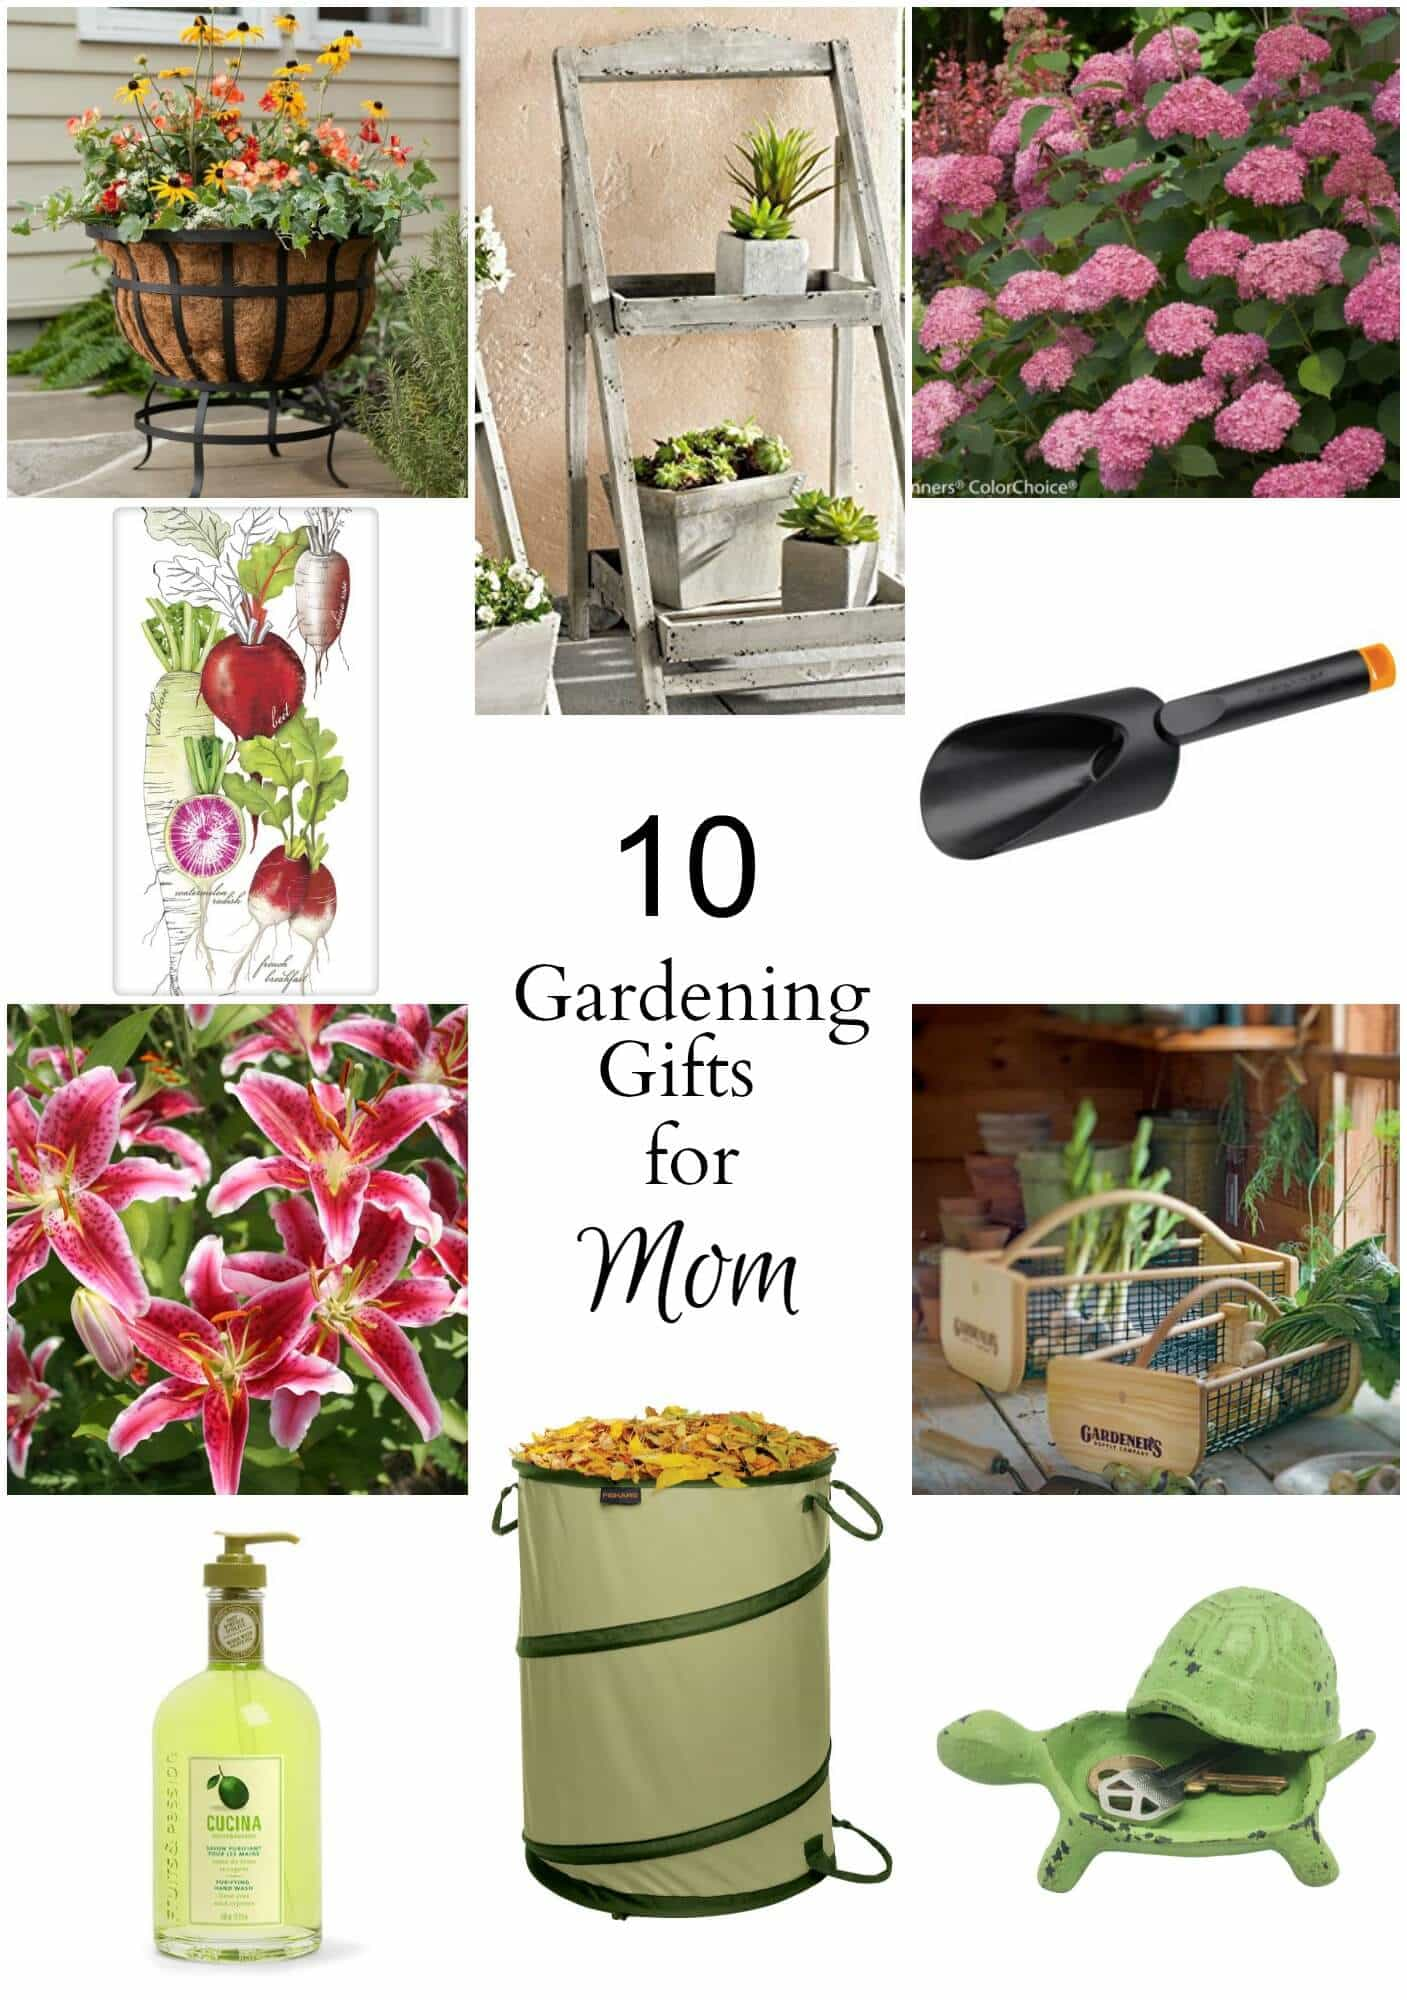 Sharing 10 gardening gifts for mom, dad or anyone who loves to garden ranging in price from $5 to $70 with an average of $20.